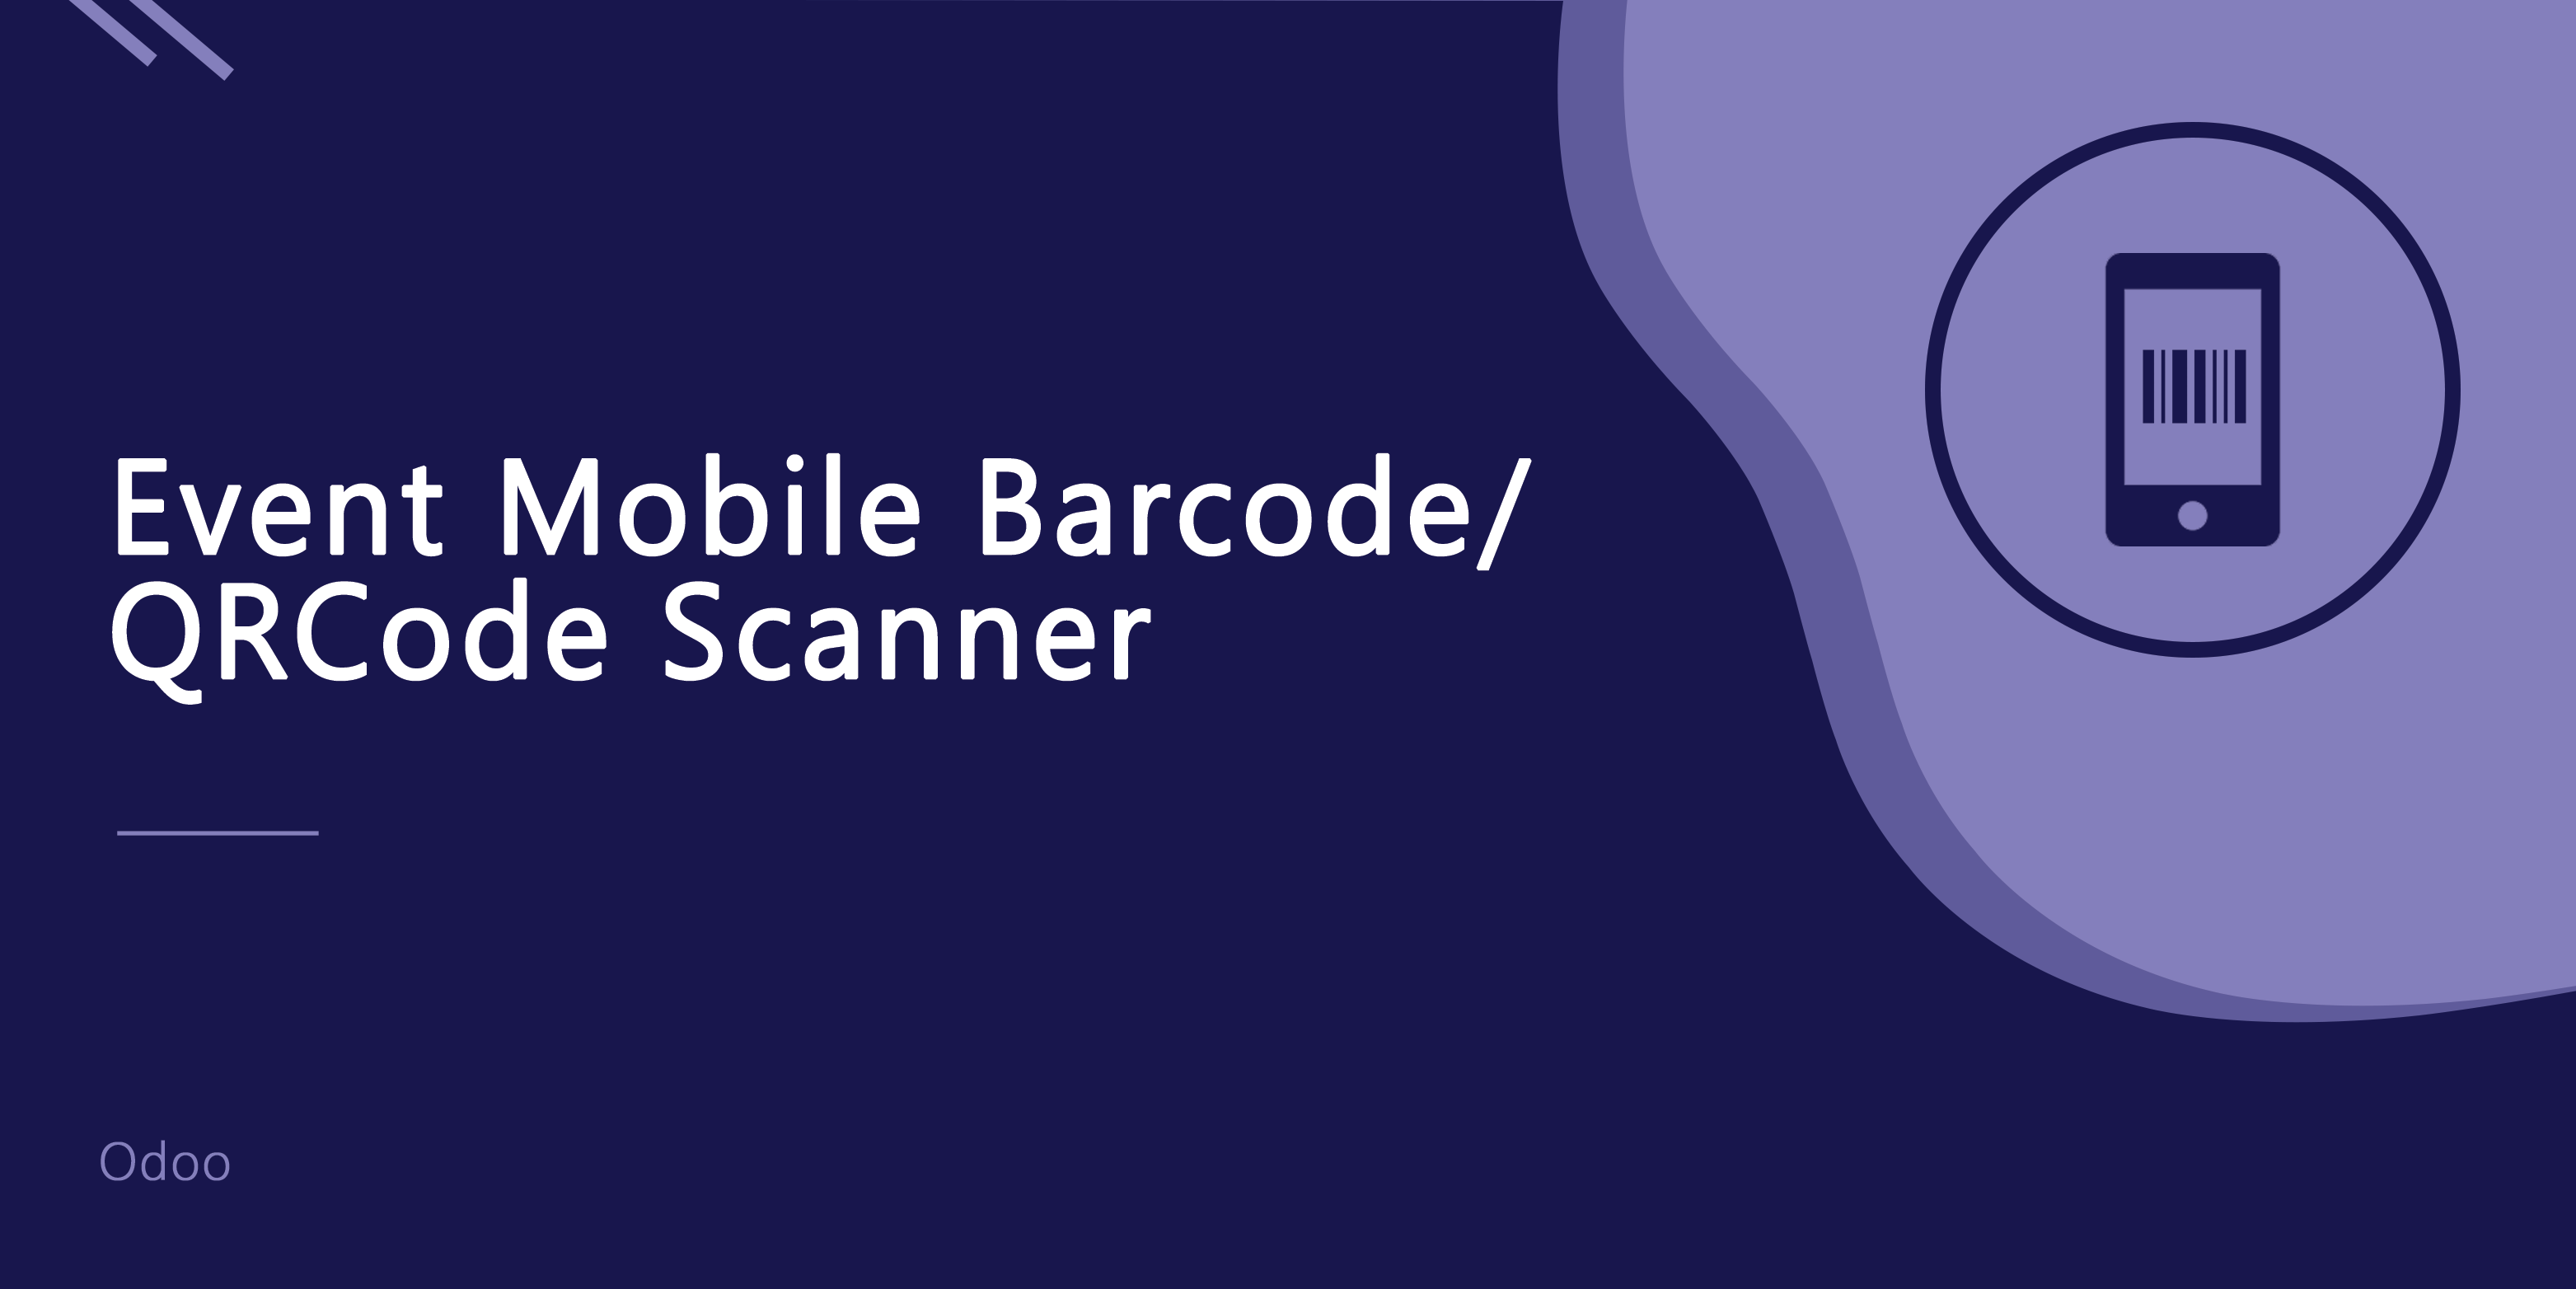 Event Mobile Barcode/QRCode Scanner